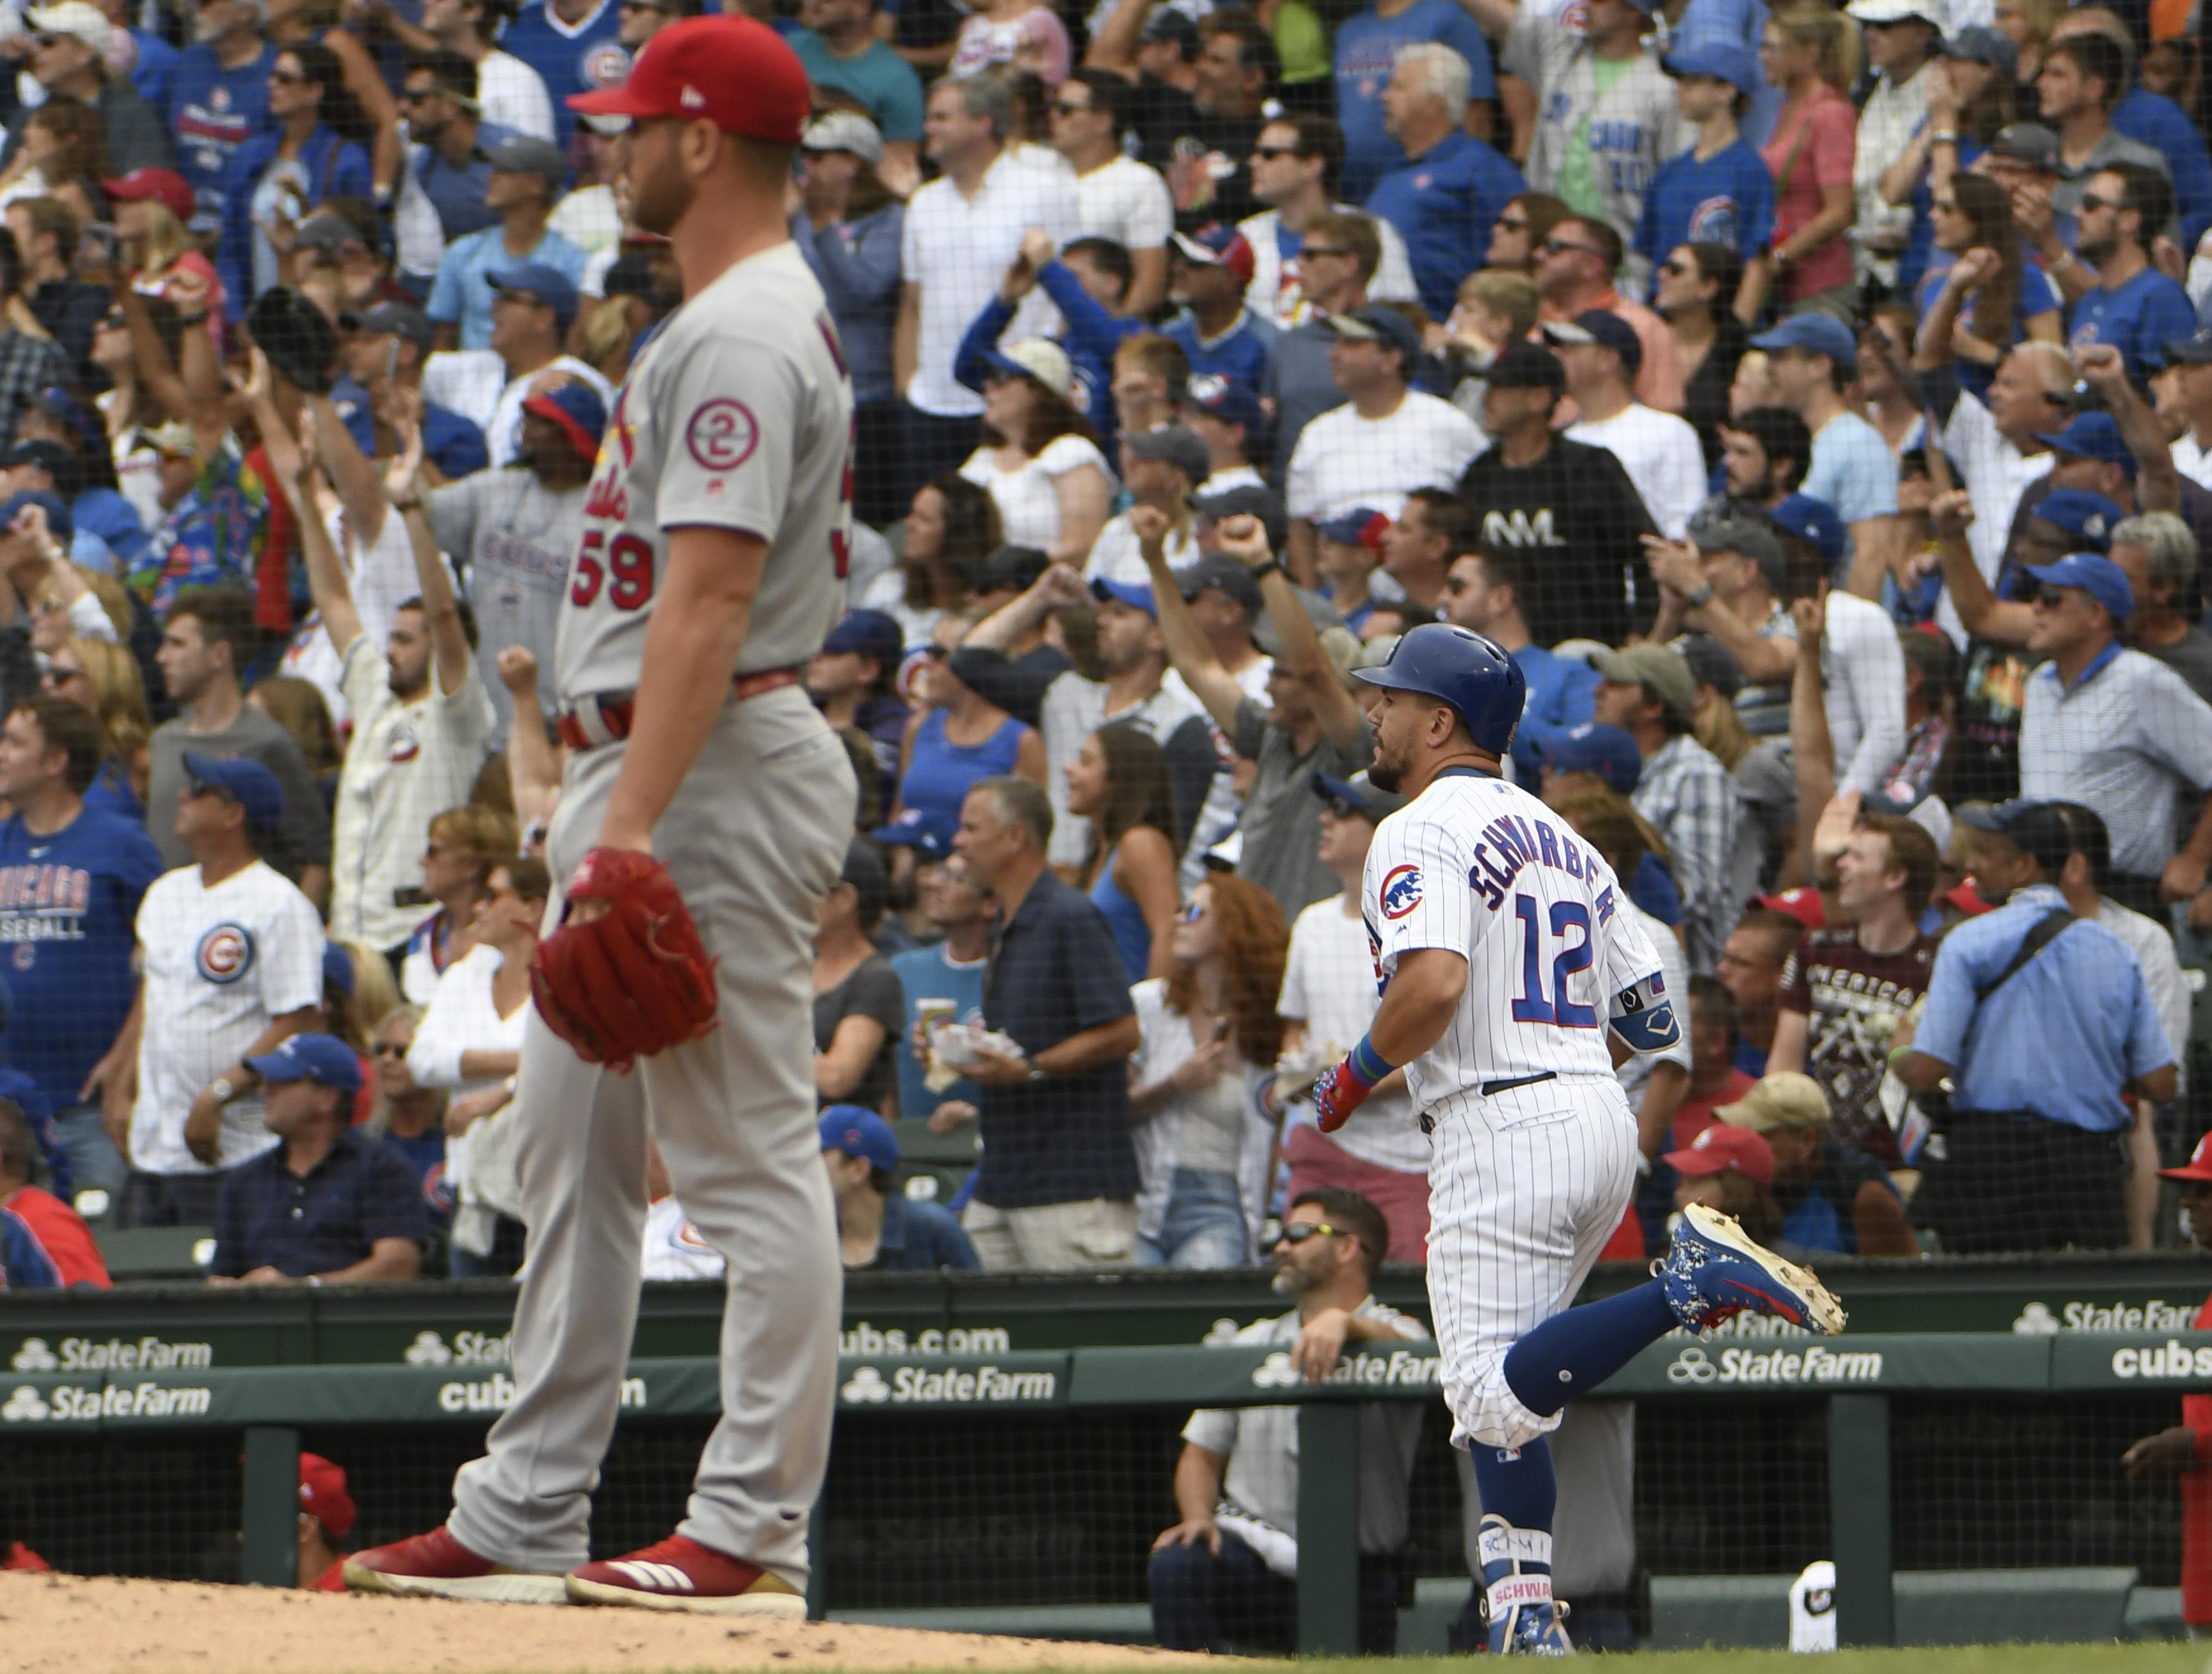 The Chicago Cubs went on to beat the St Louis Cardinals 7-2